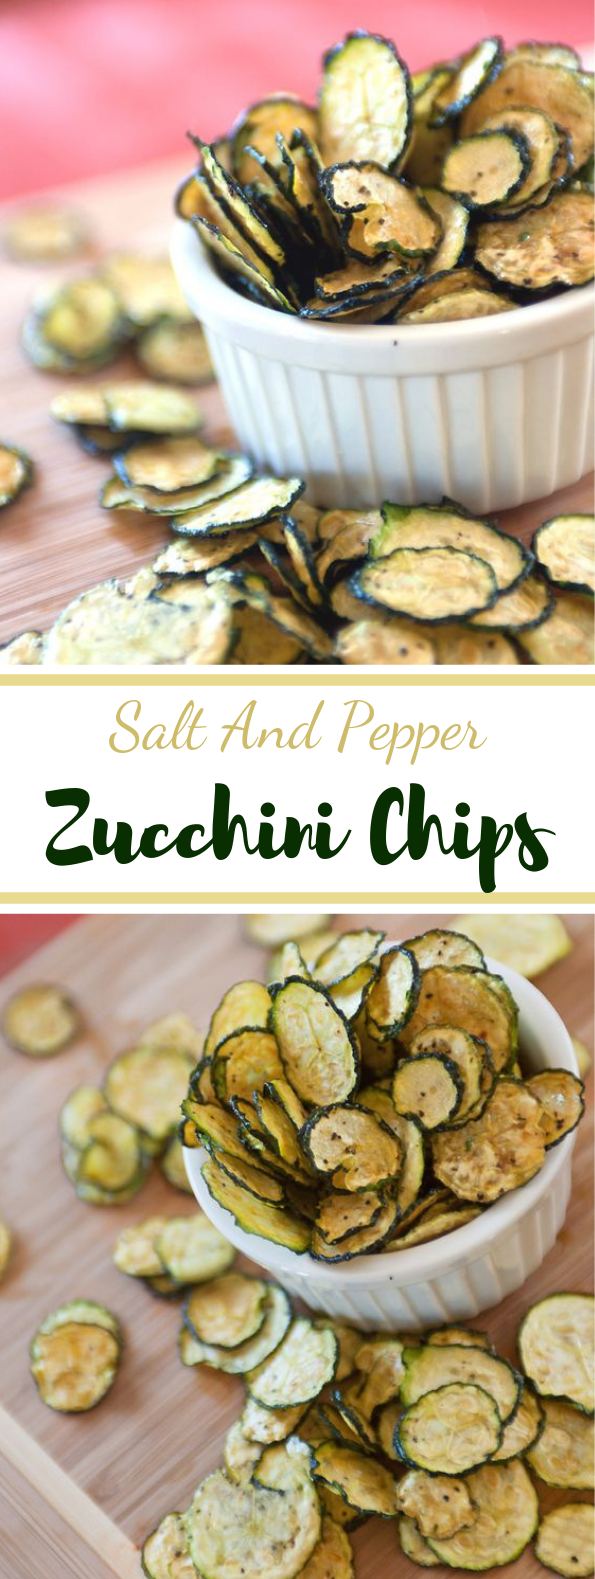 Salt And Pepper Zucchini Chips #vegan #chips